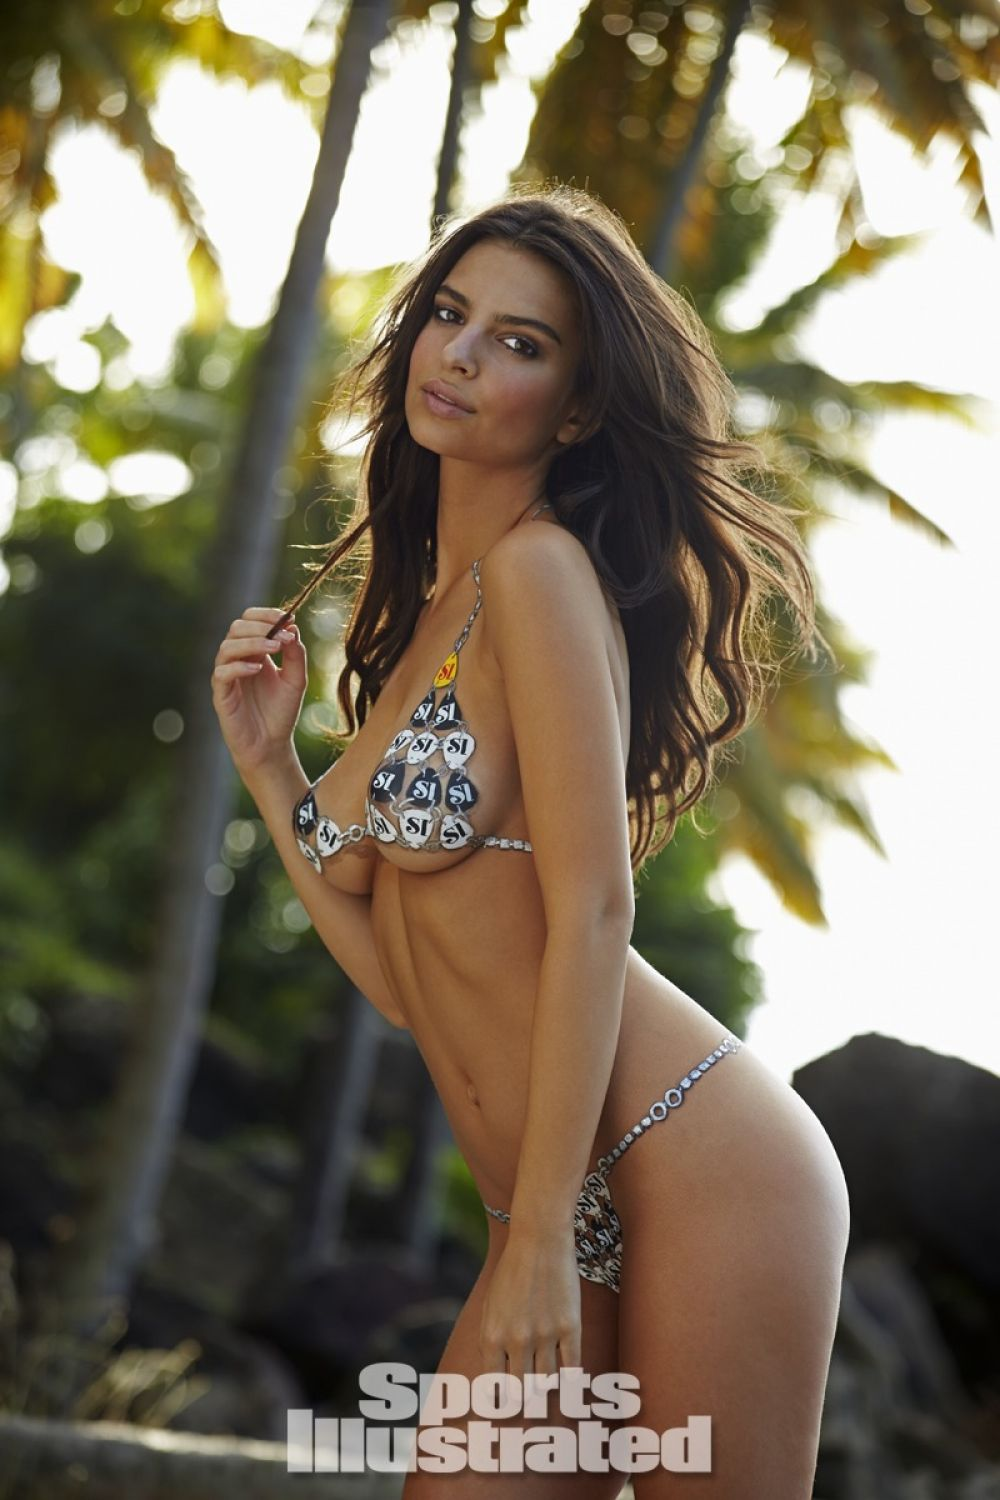 emily-ratajkowski-in-sports-illustrated-2014-swimsuit-issue_6.jpg - 147.10 KB